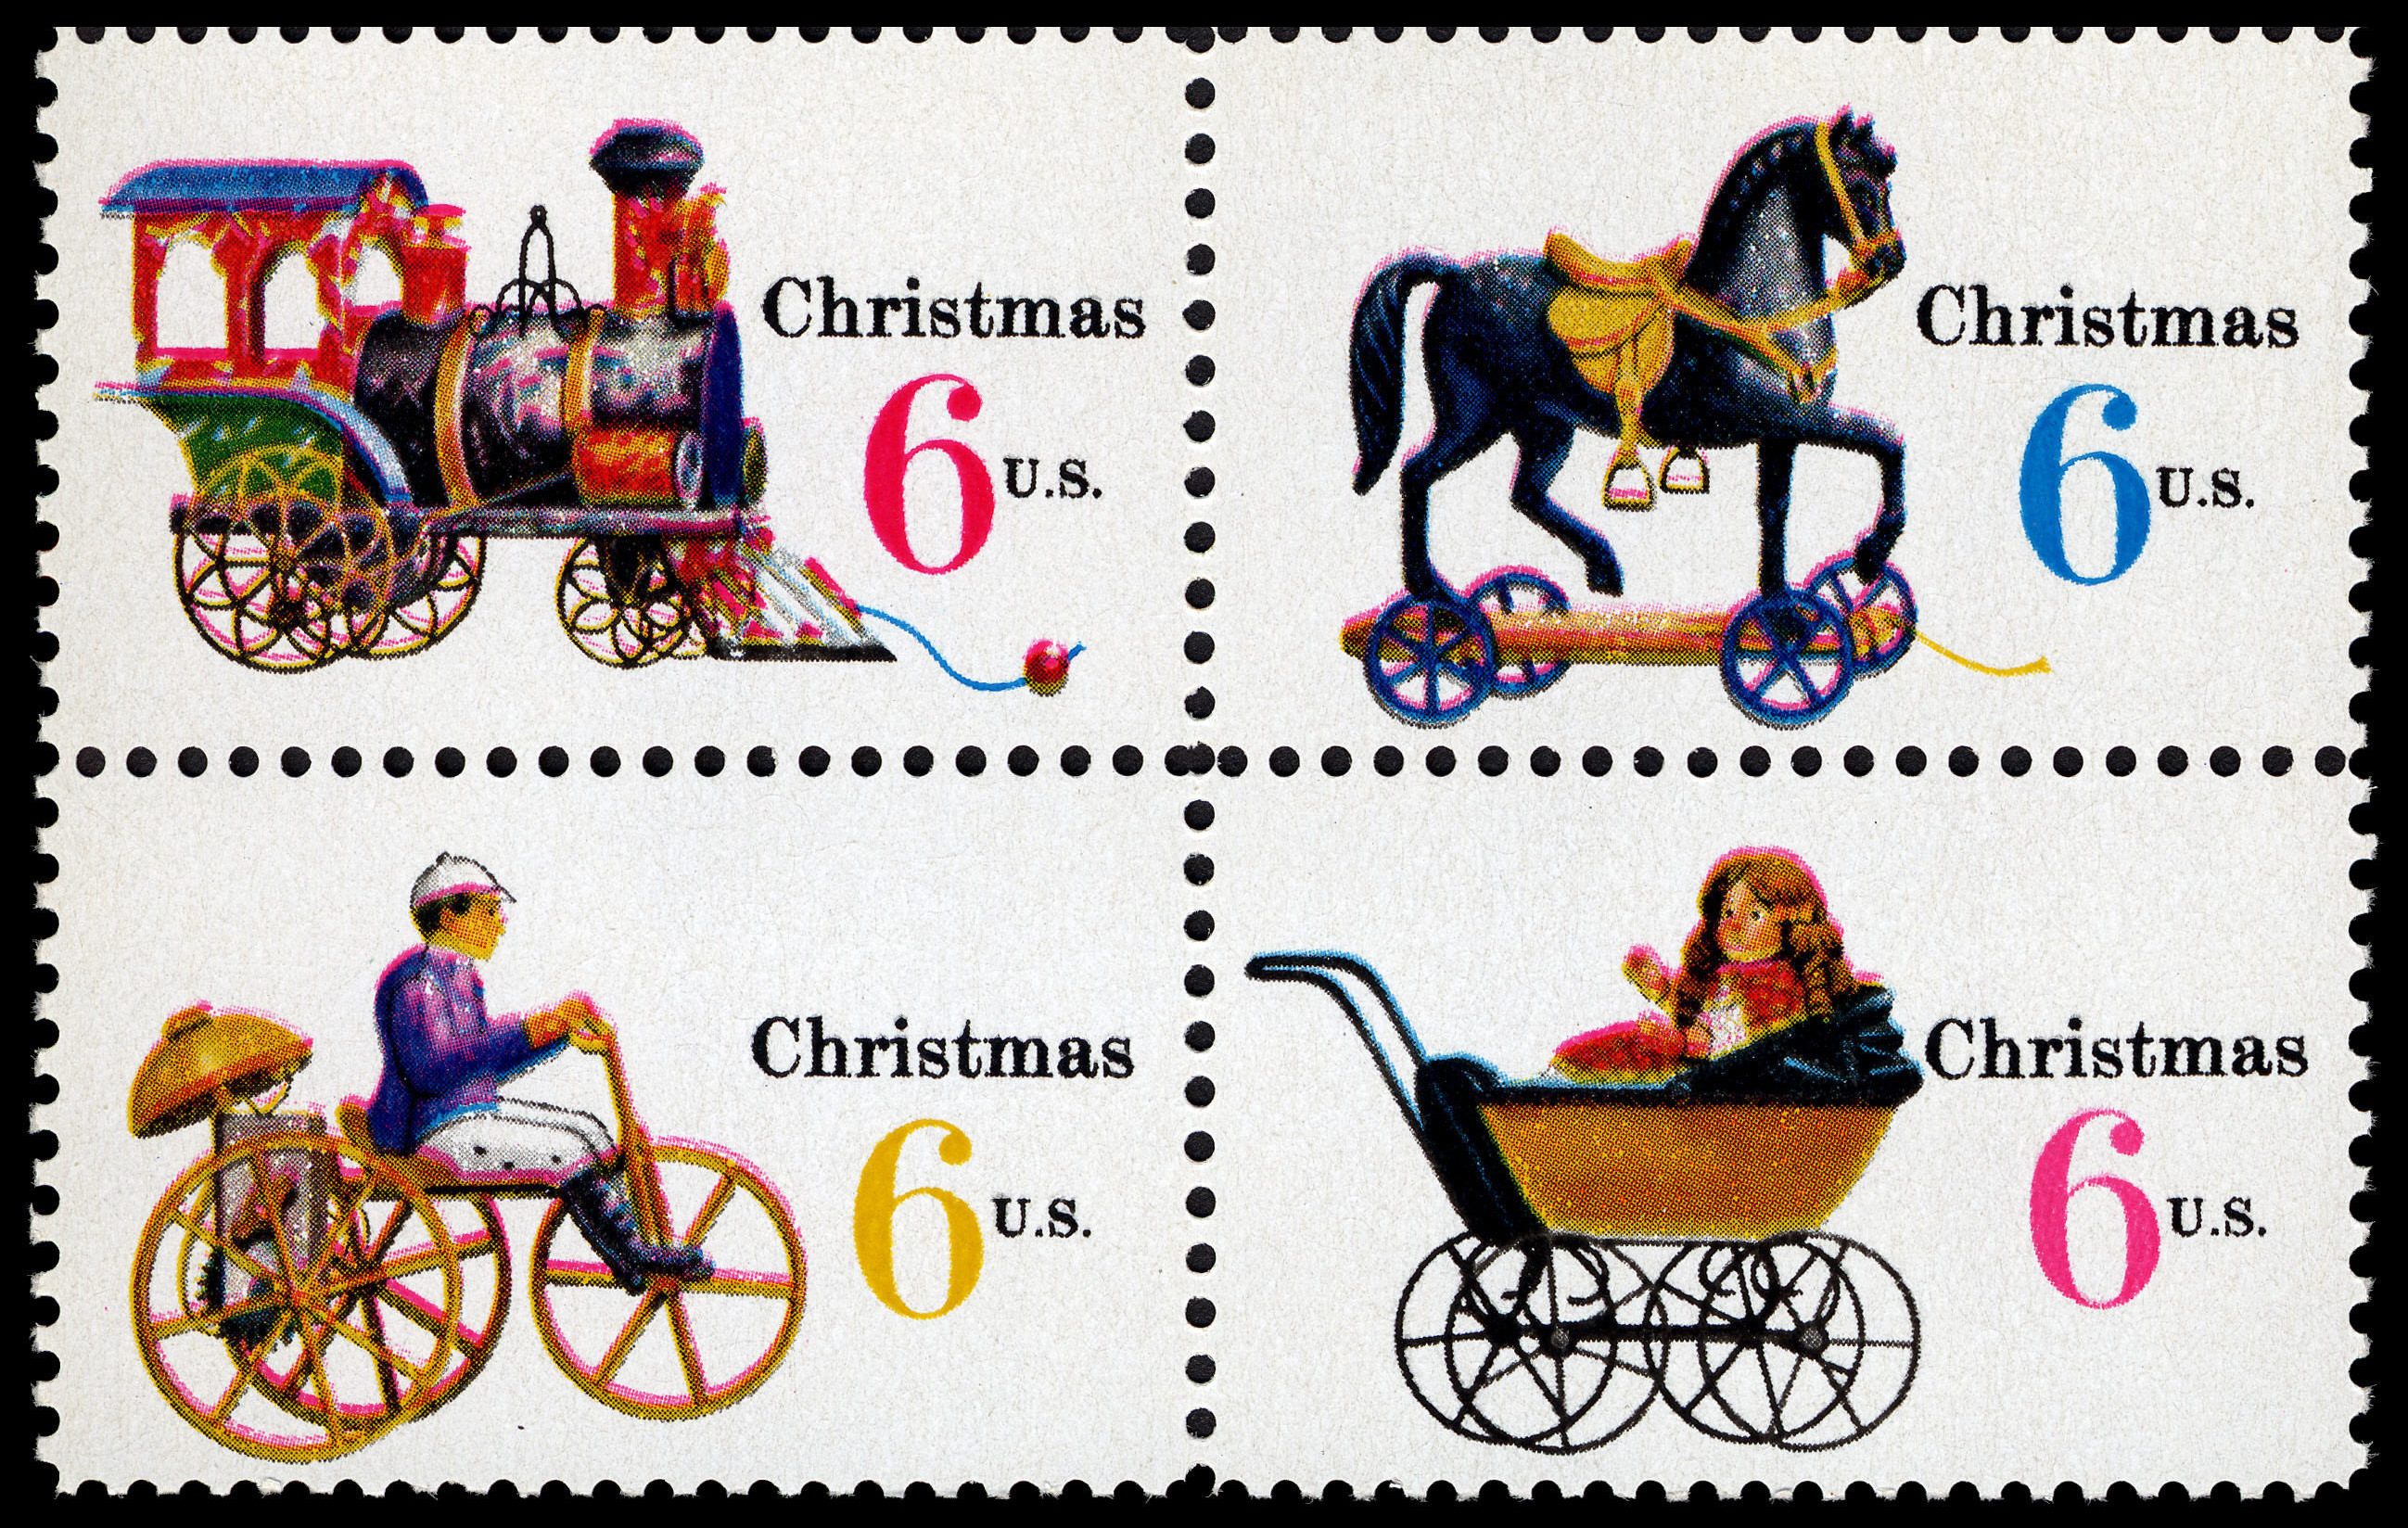 Christmas_Toys_6c_1970_issue_U.S._stamp